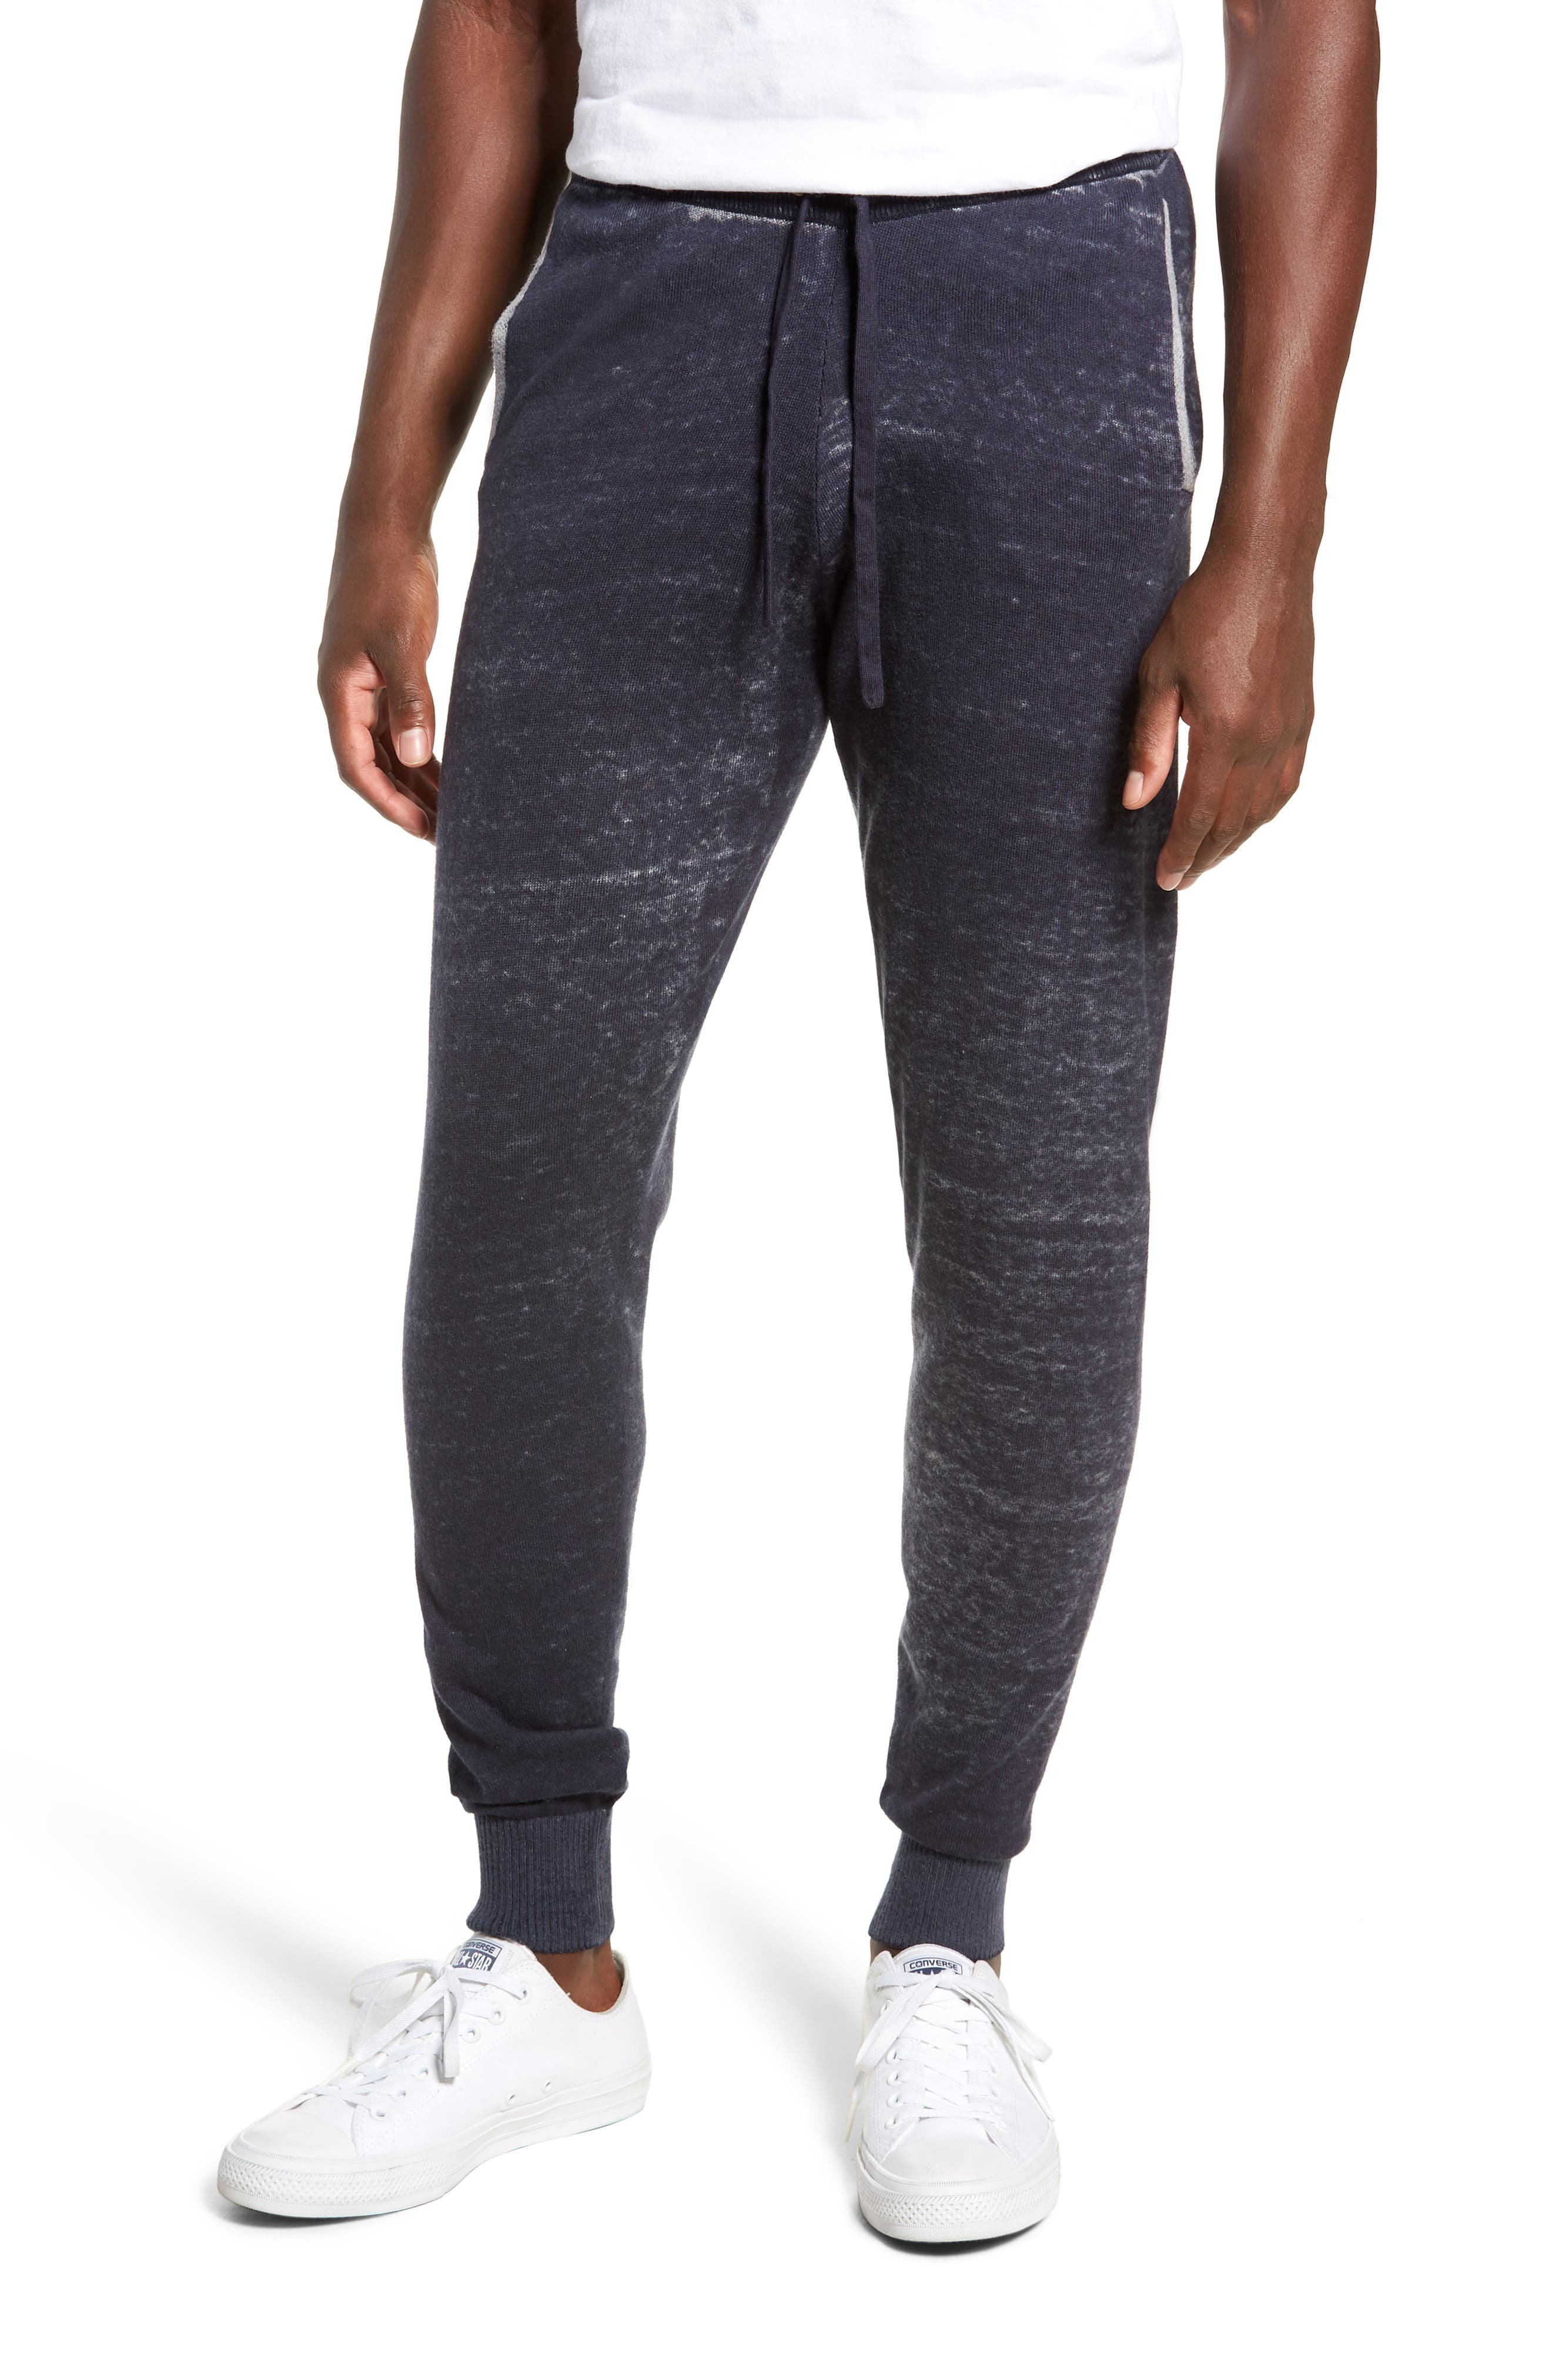 Kruse Rev Print Cash Sweatpants,                             Main thumbnail 1, color,                             MOONLESS NIGHT